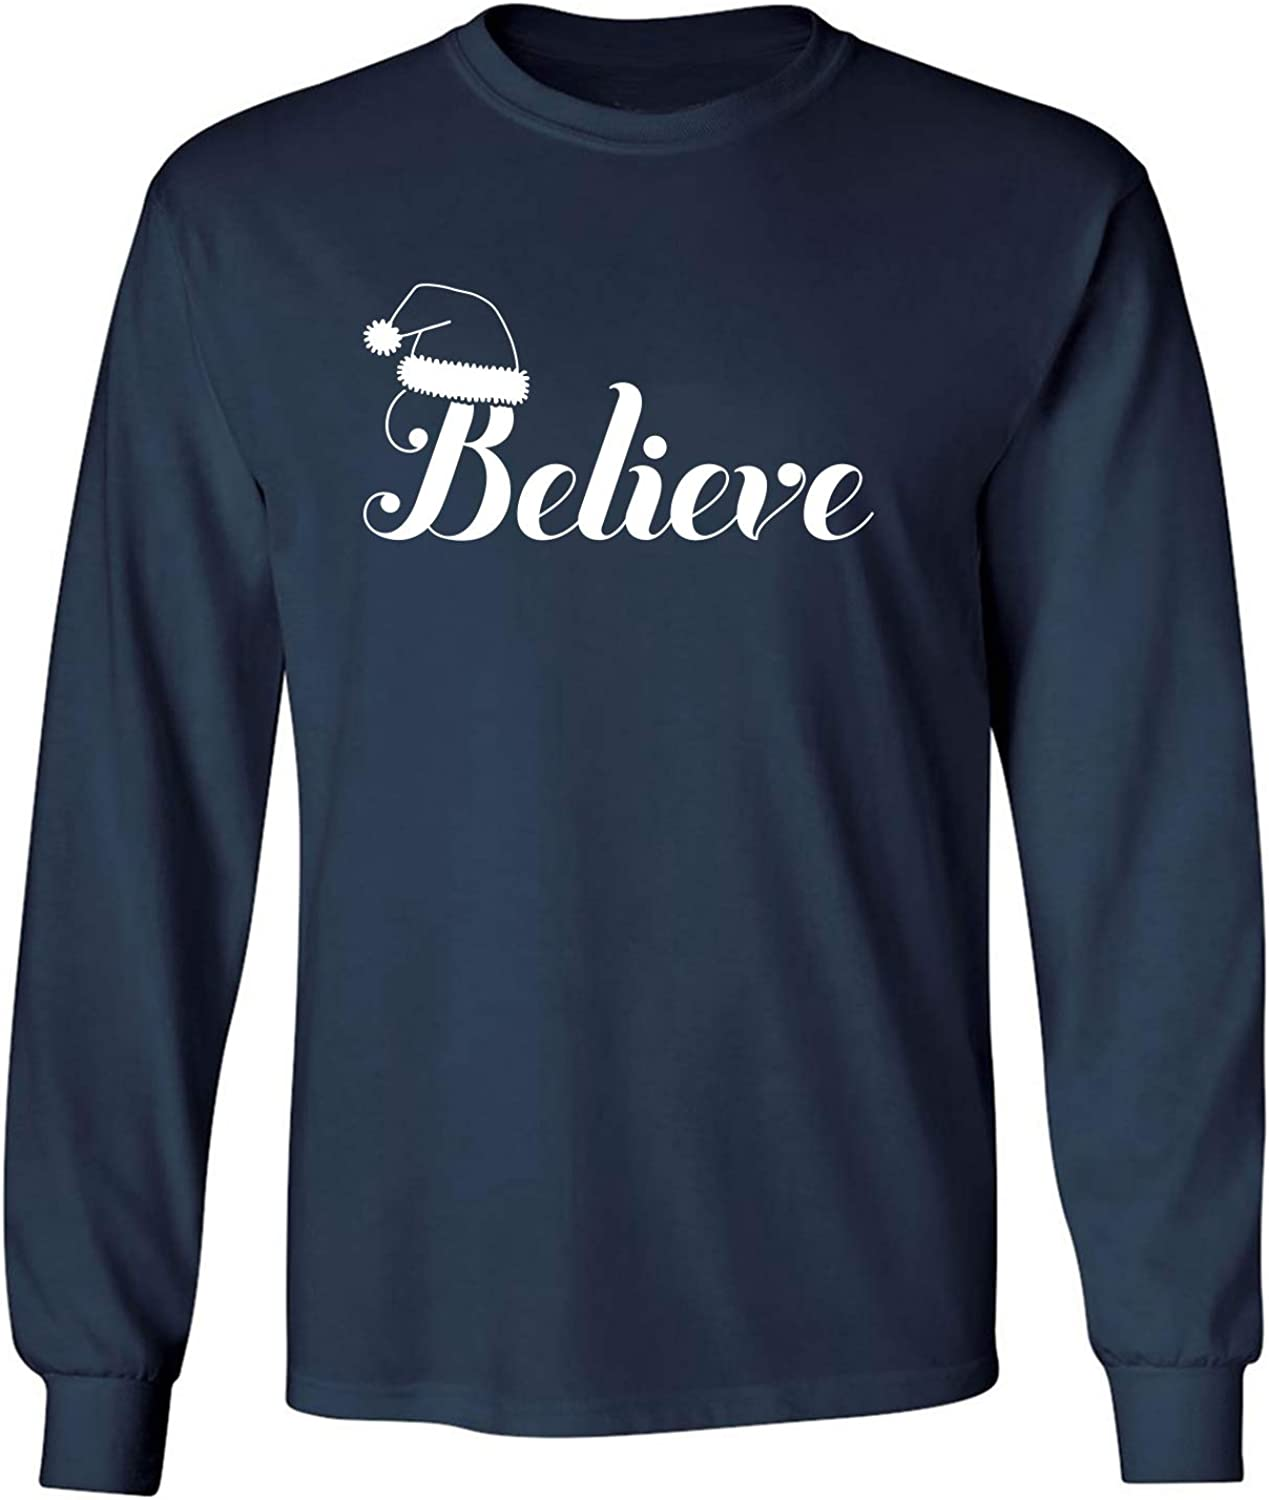 Believe Adult Long Sleeve T-Shirt in Navy - XXXXX-Large